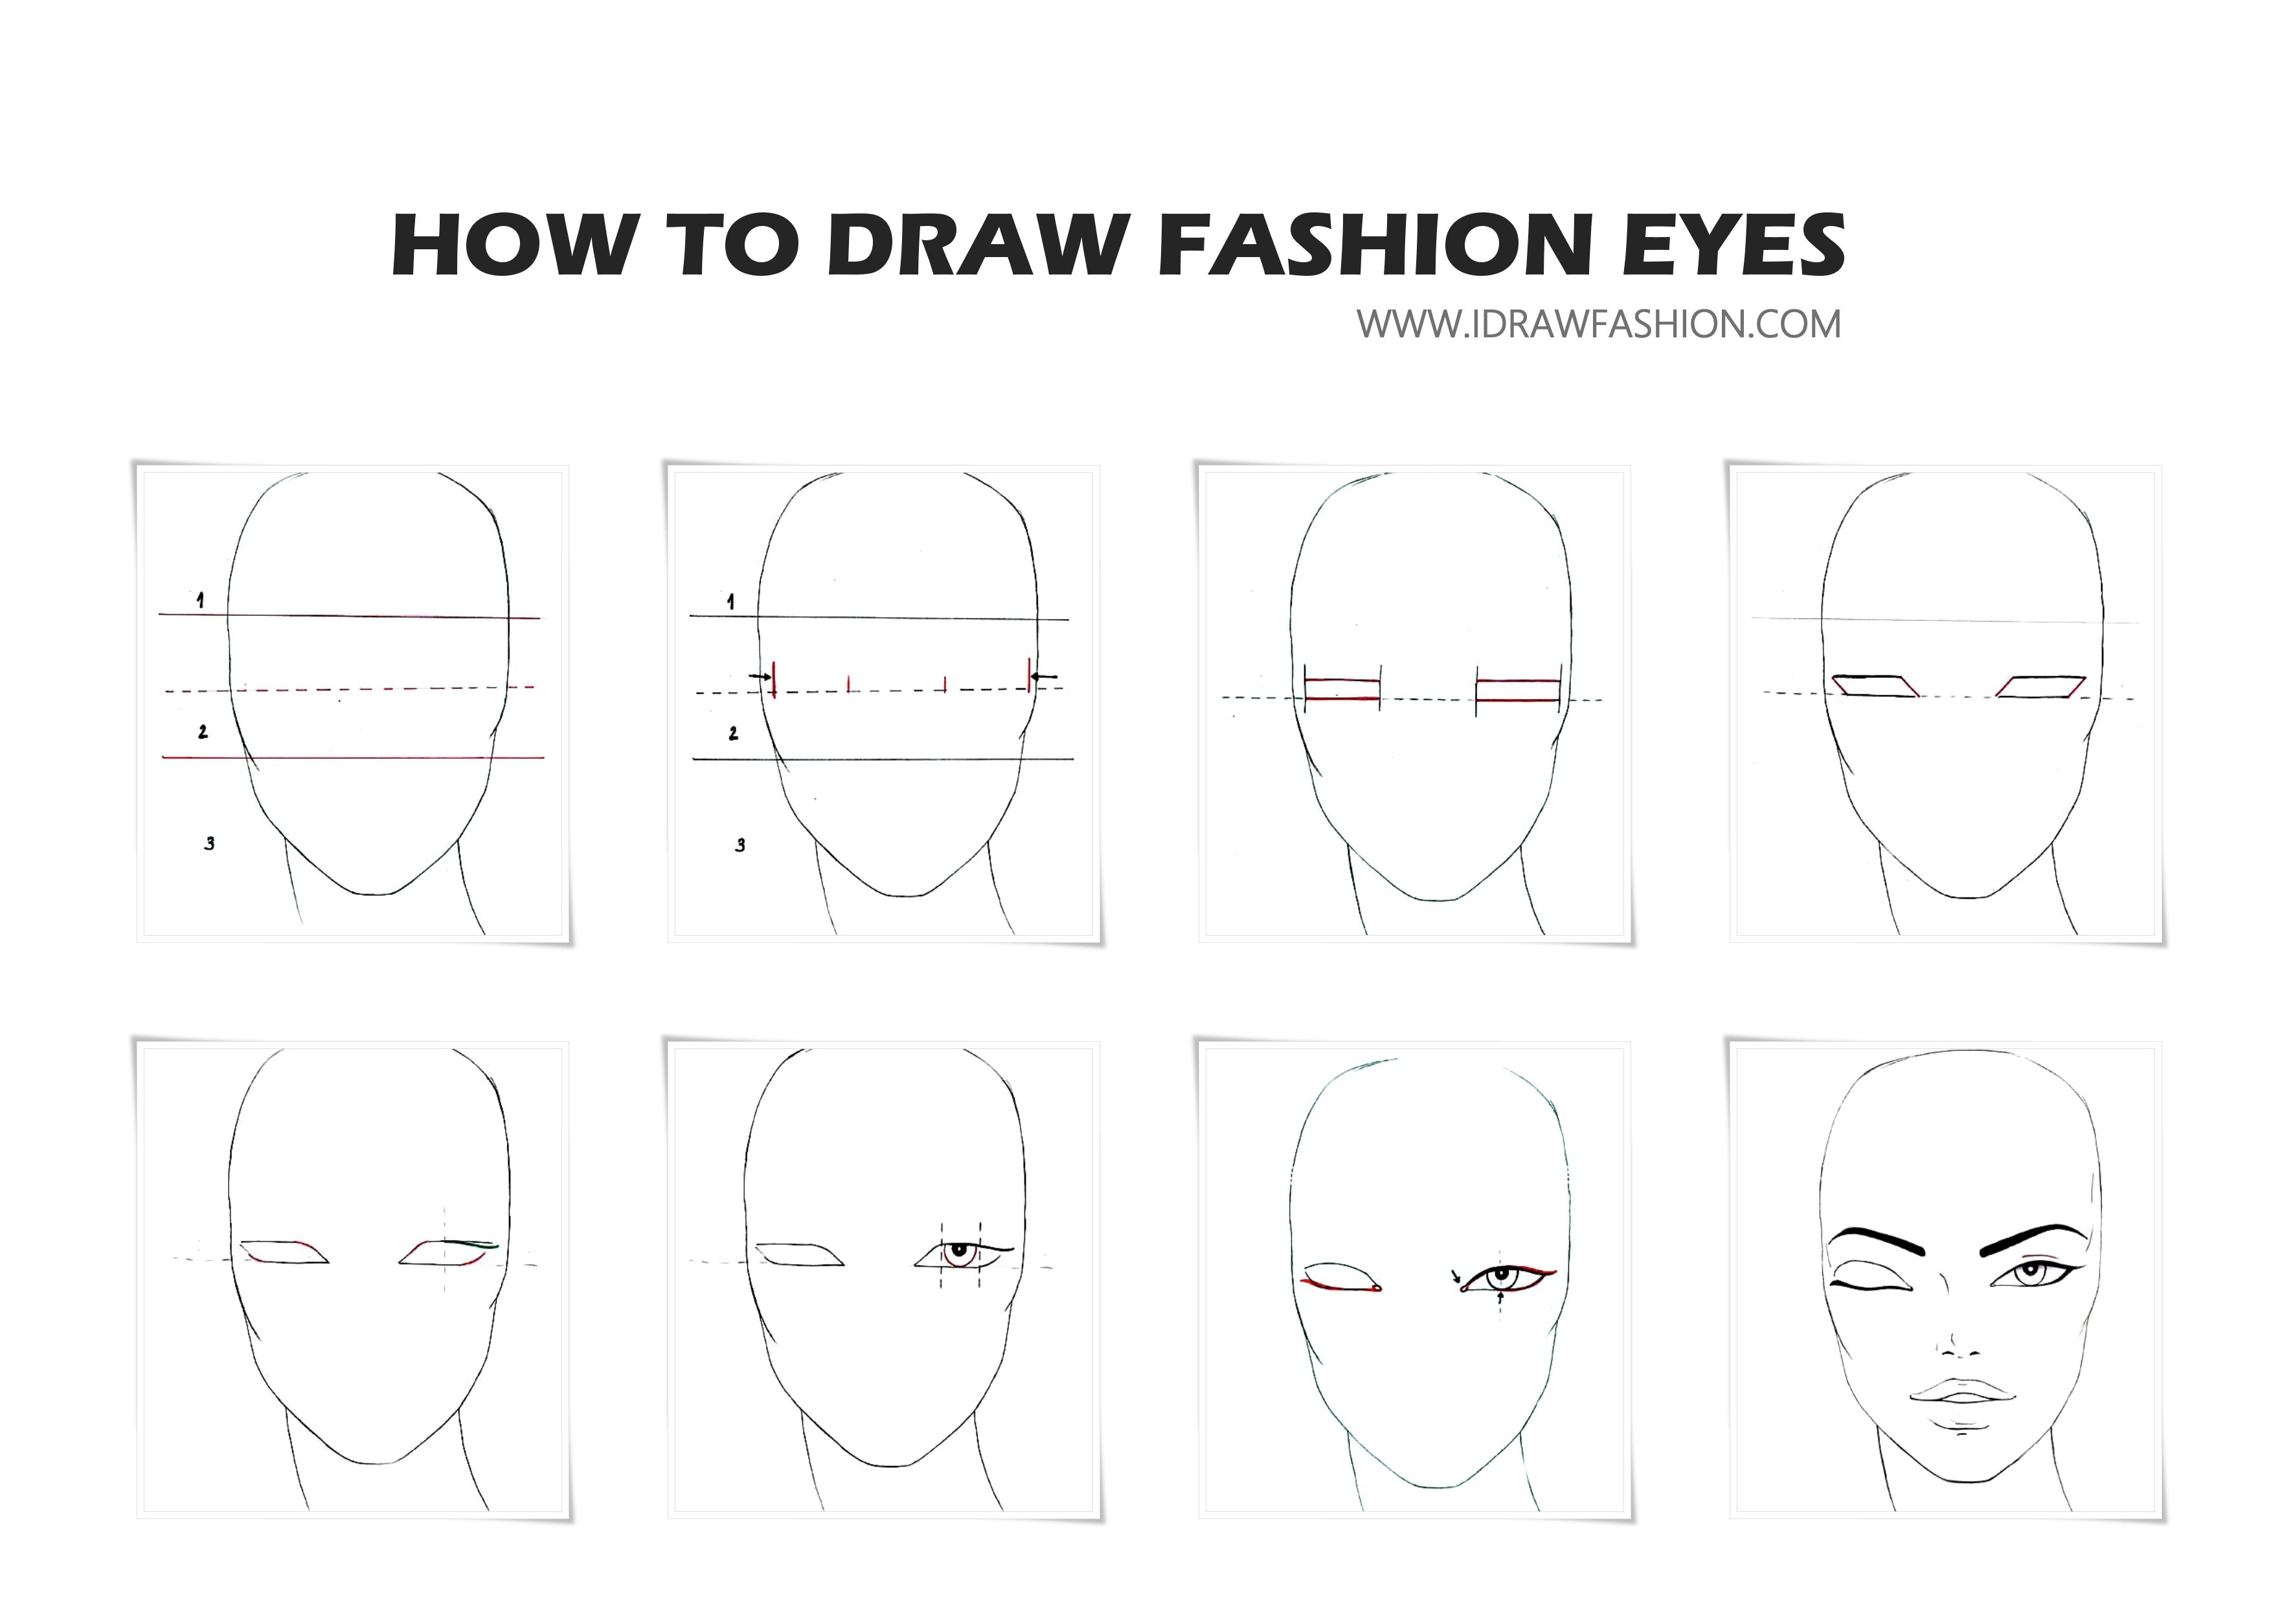 How To Draw Eyes Step By Step I Draw Fashion Fashion Design Sketches Fashion Illustration Face Fashion Illustrations Techniques